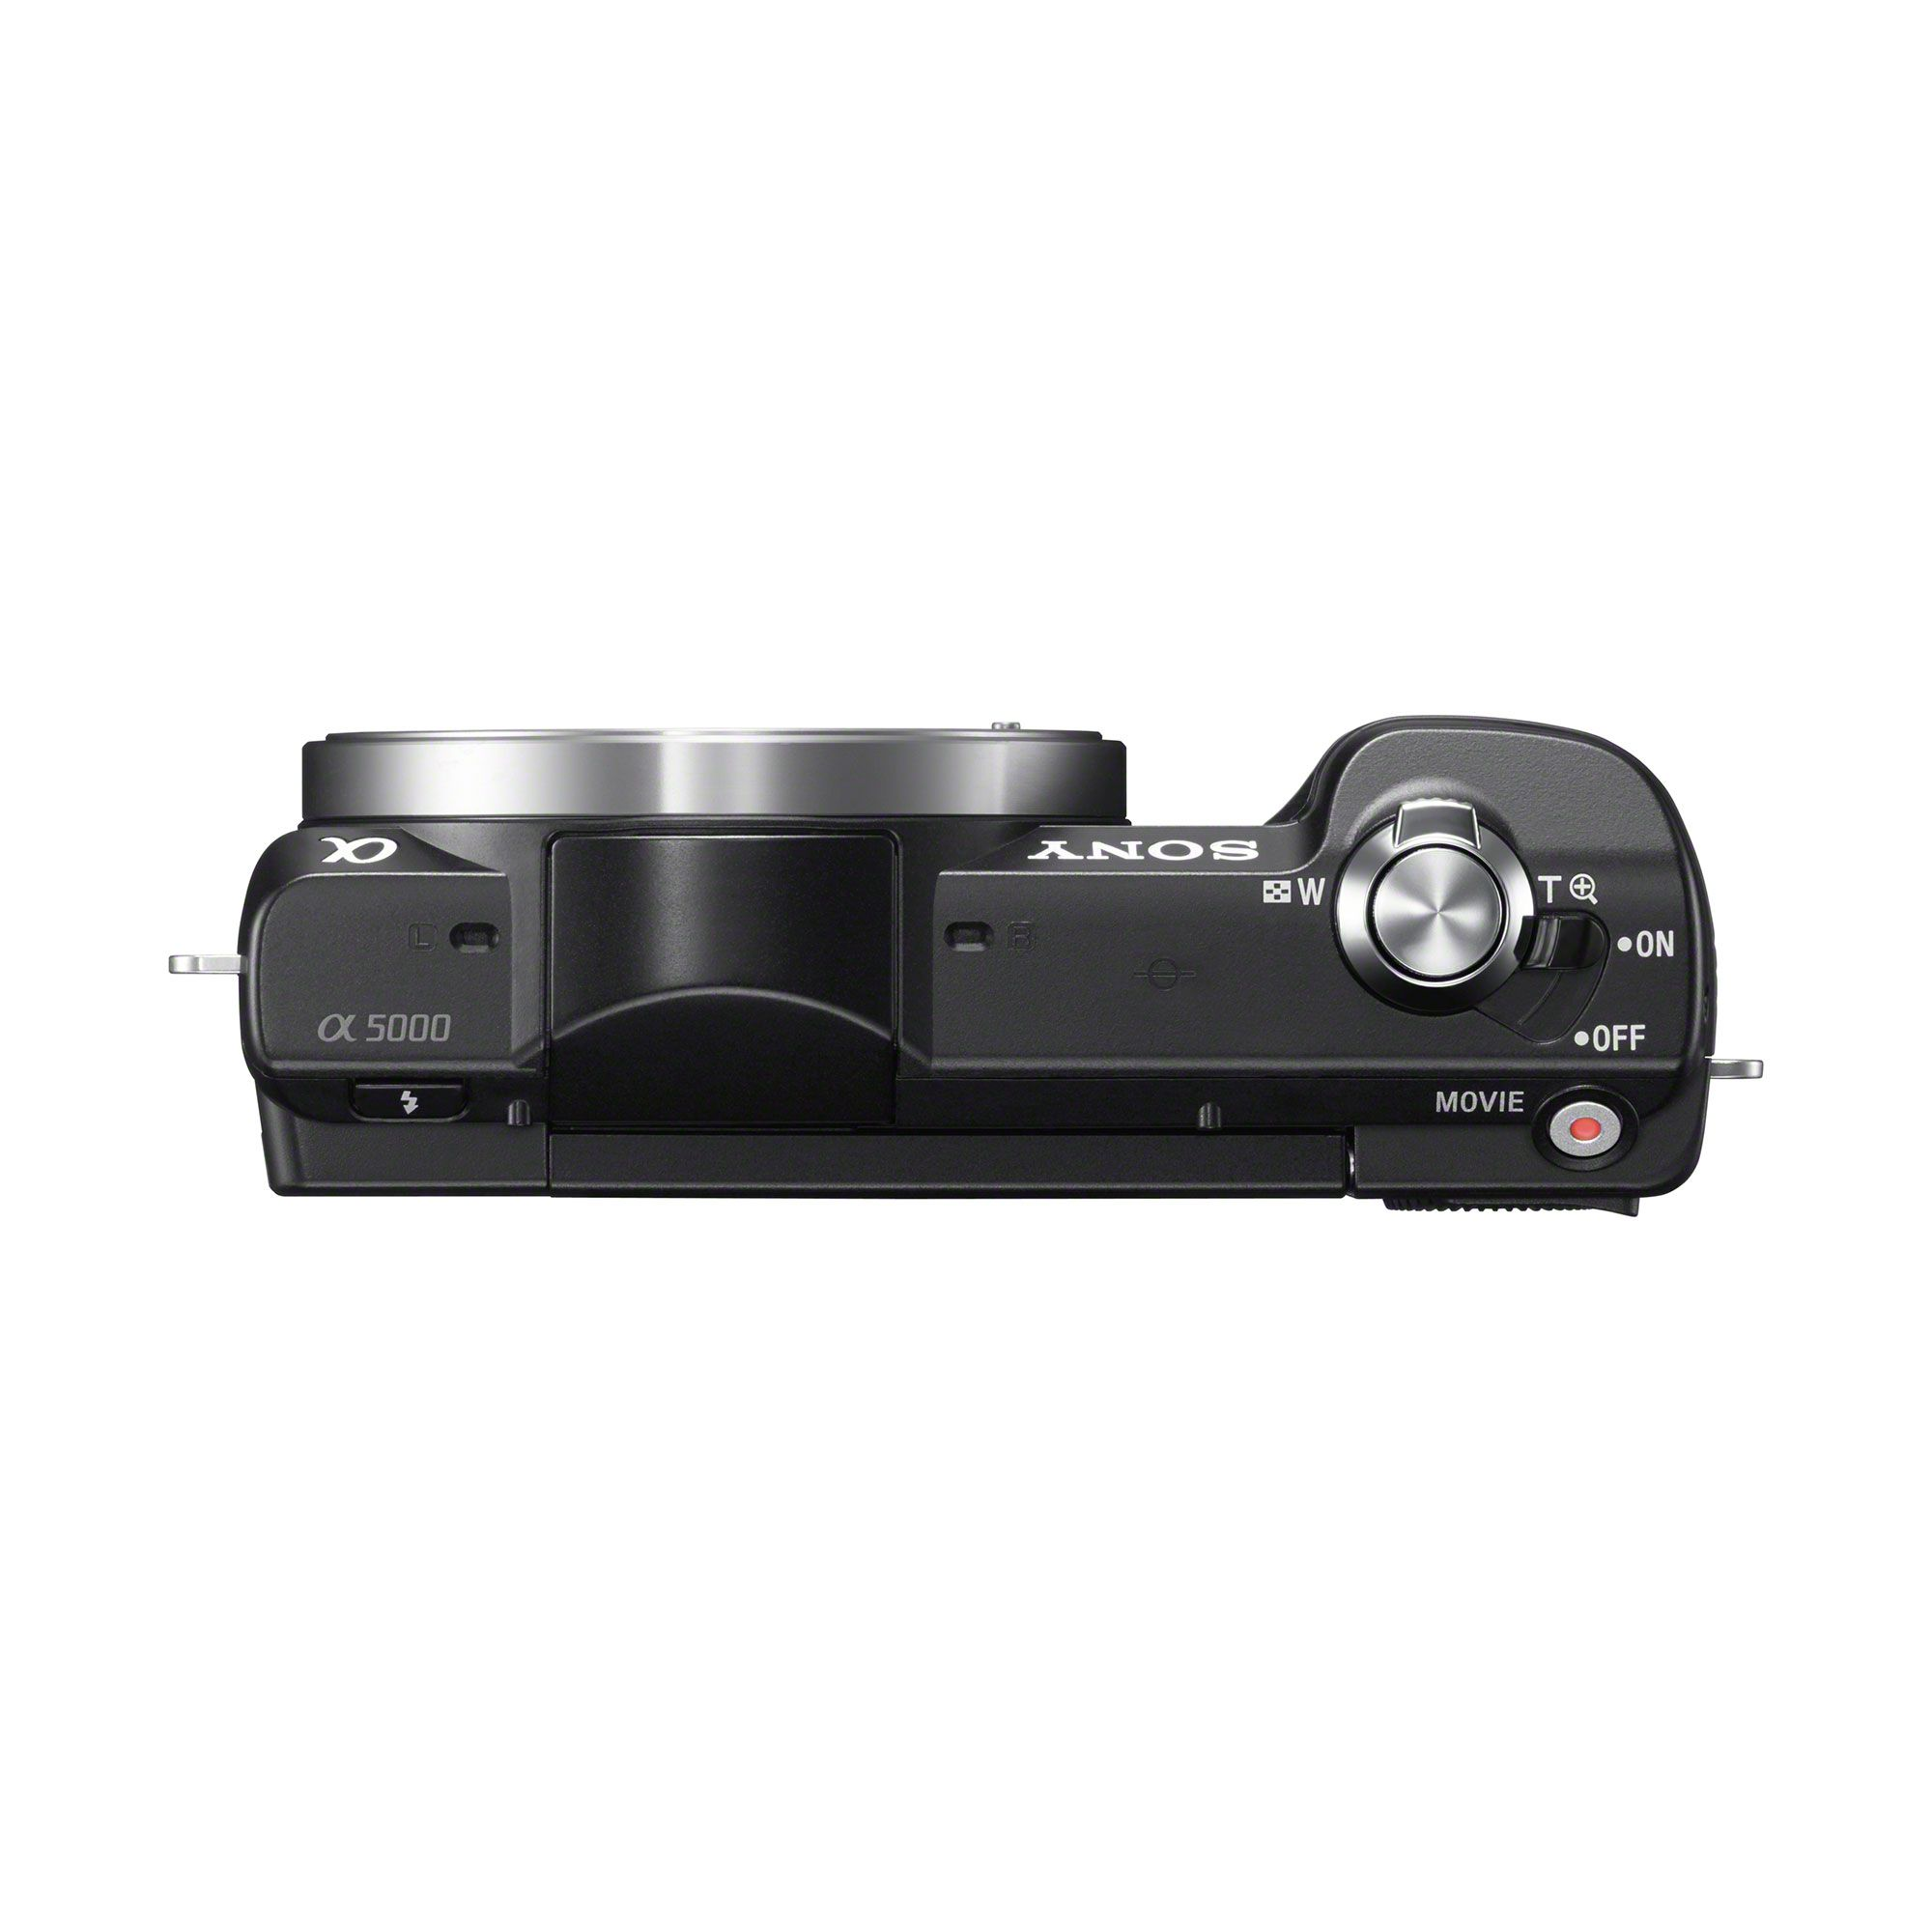 Sony a5000 (ILCE-5000) detail page